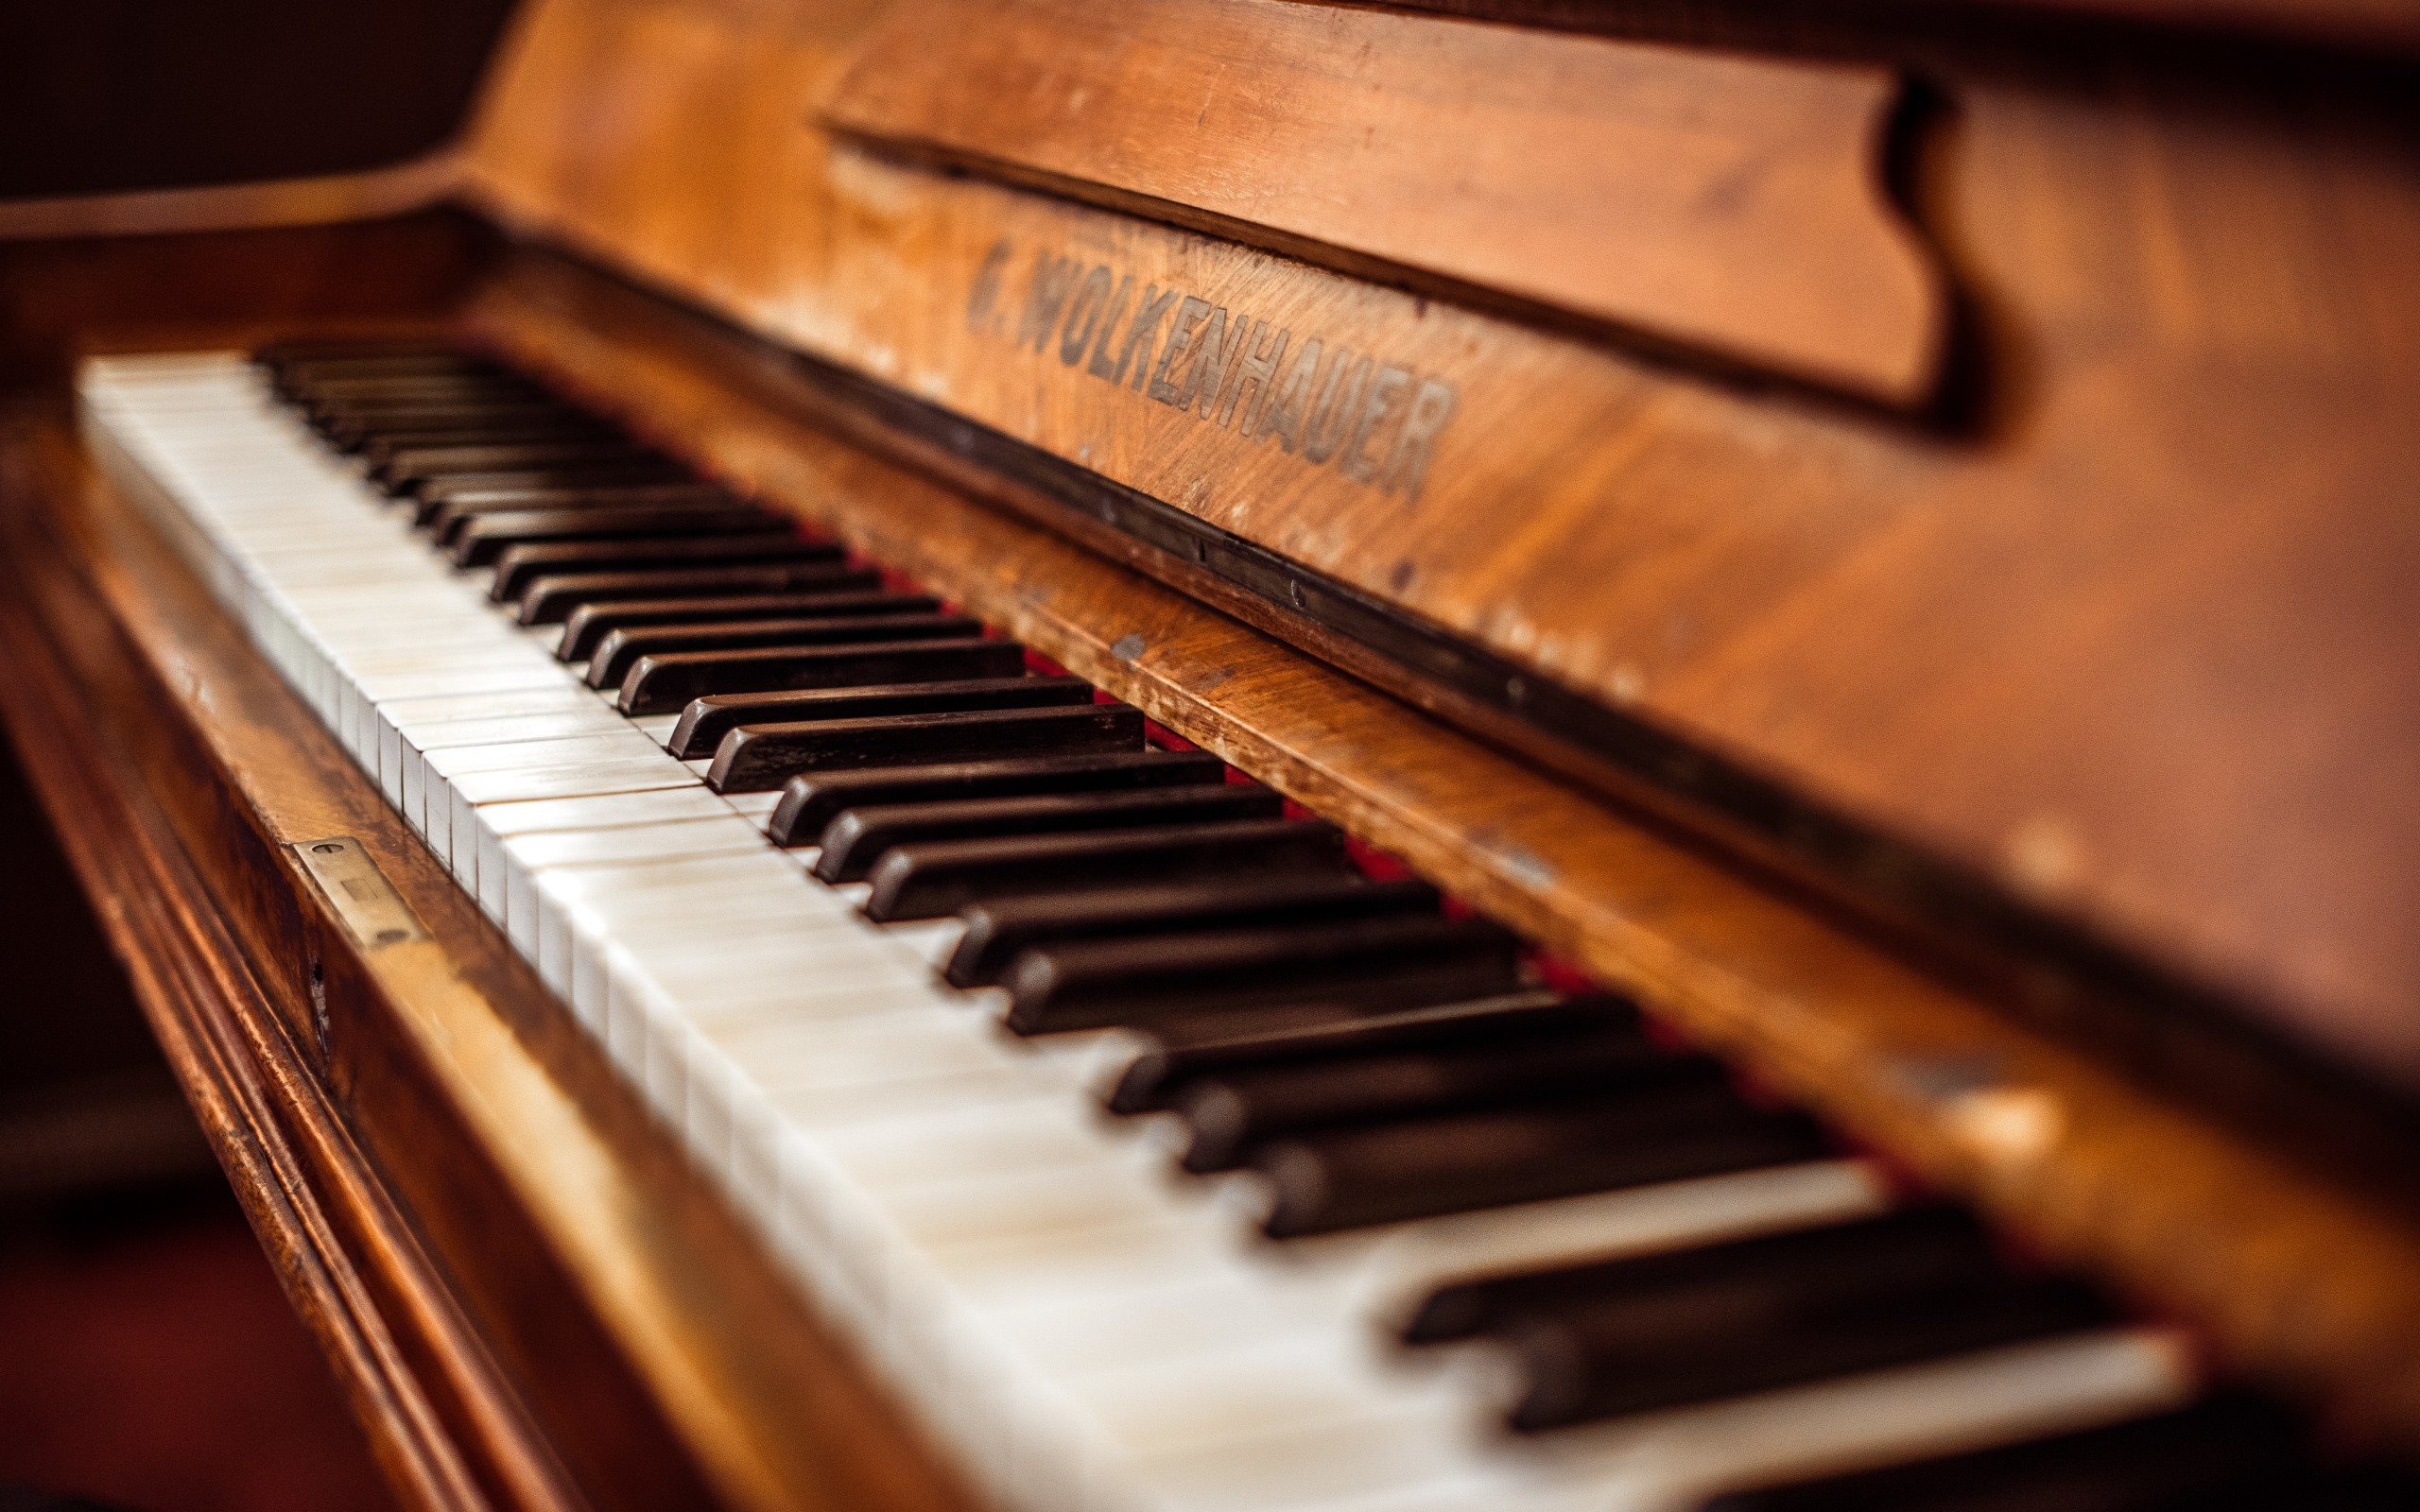 old-piano-grand-piano-piano-keys-wooden-